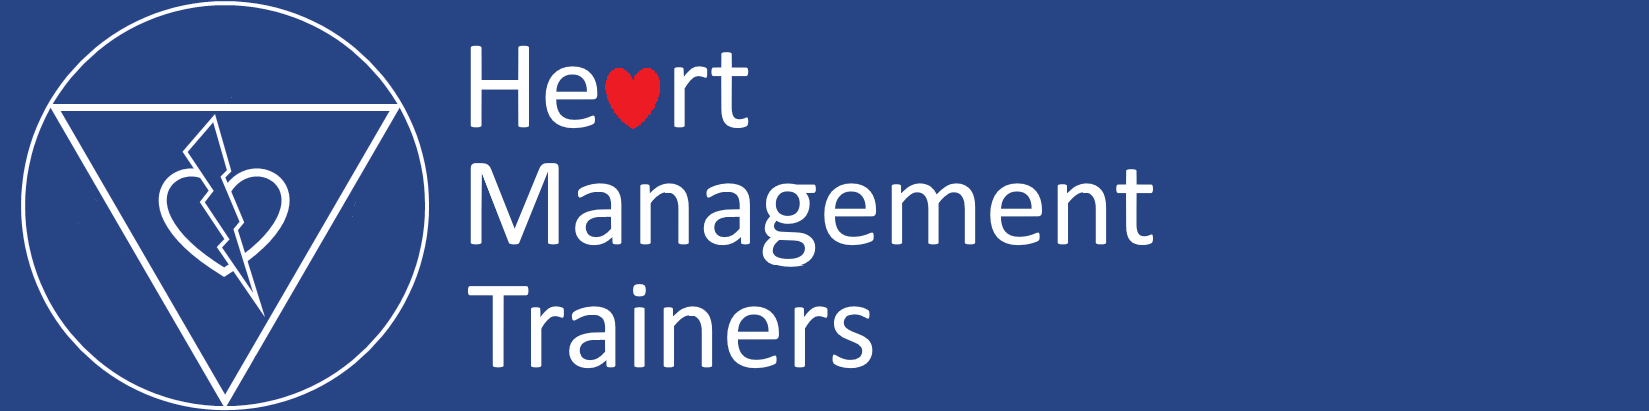 Heart Management Trainers